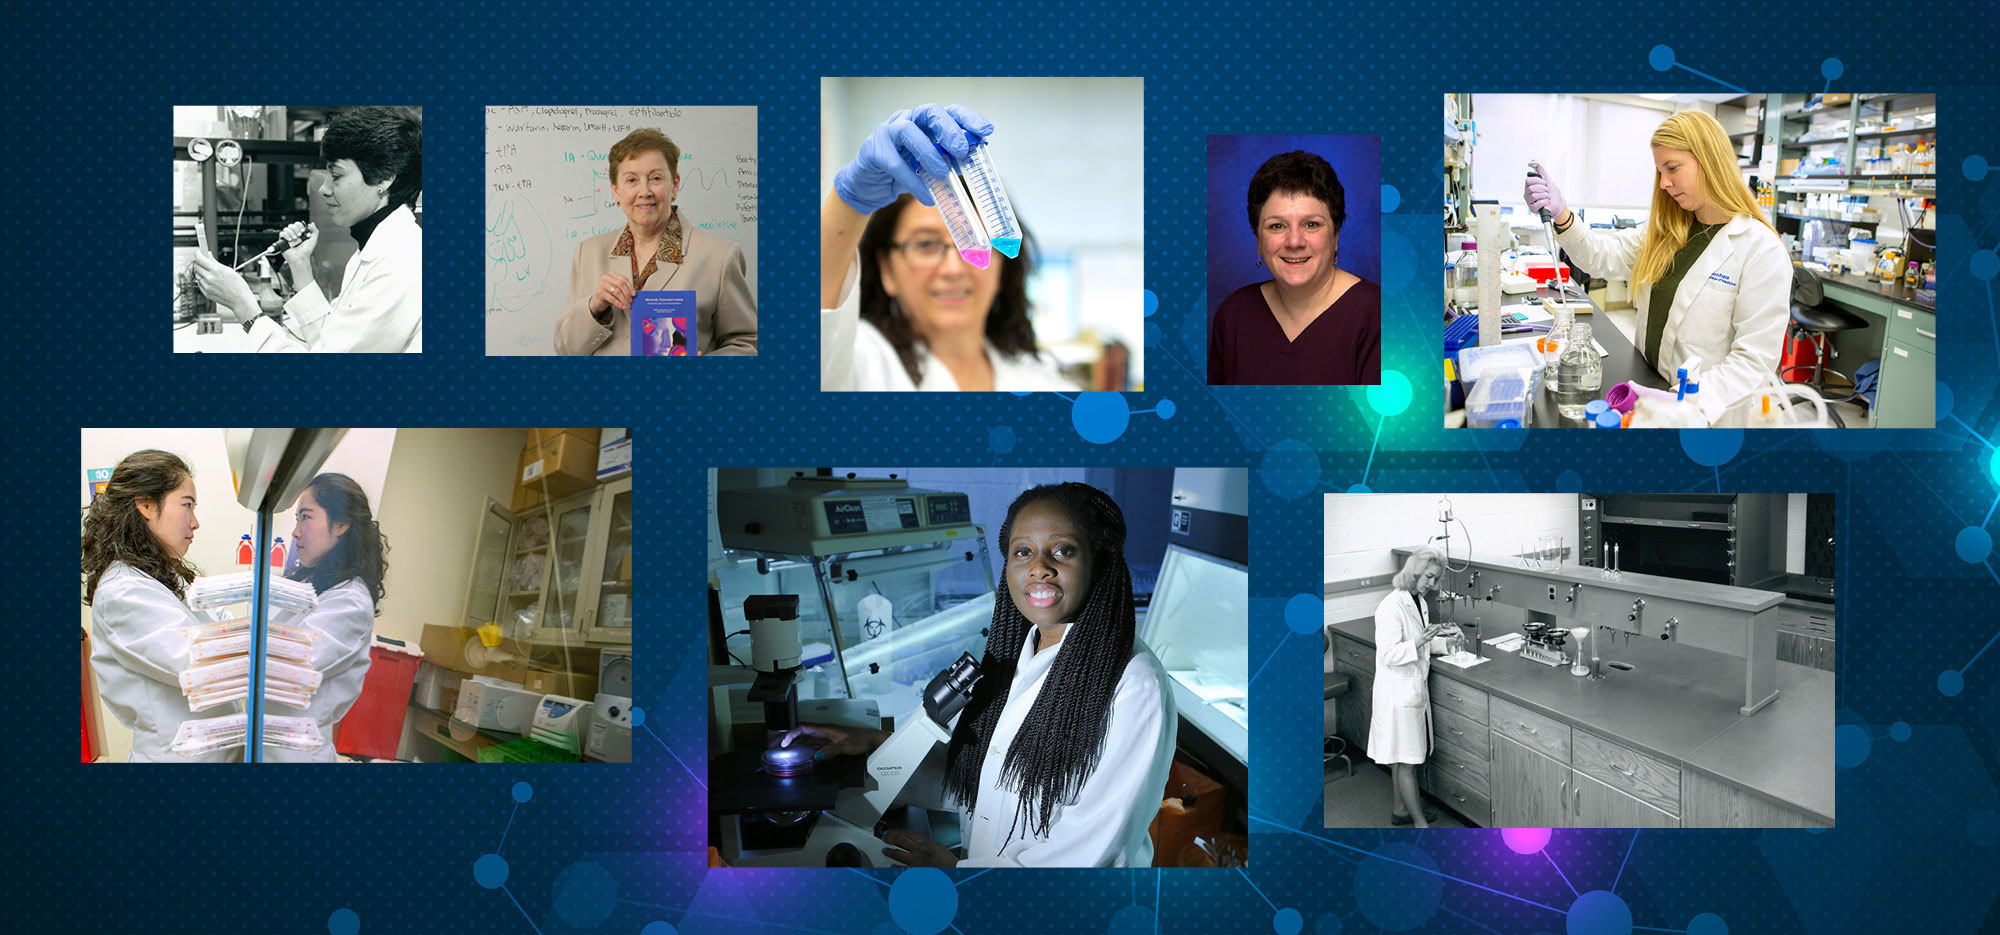 A collage of eight photos shows women from the past and present engaged in various forms of scientific work.